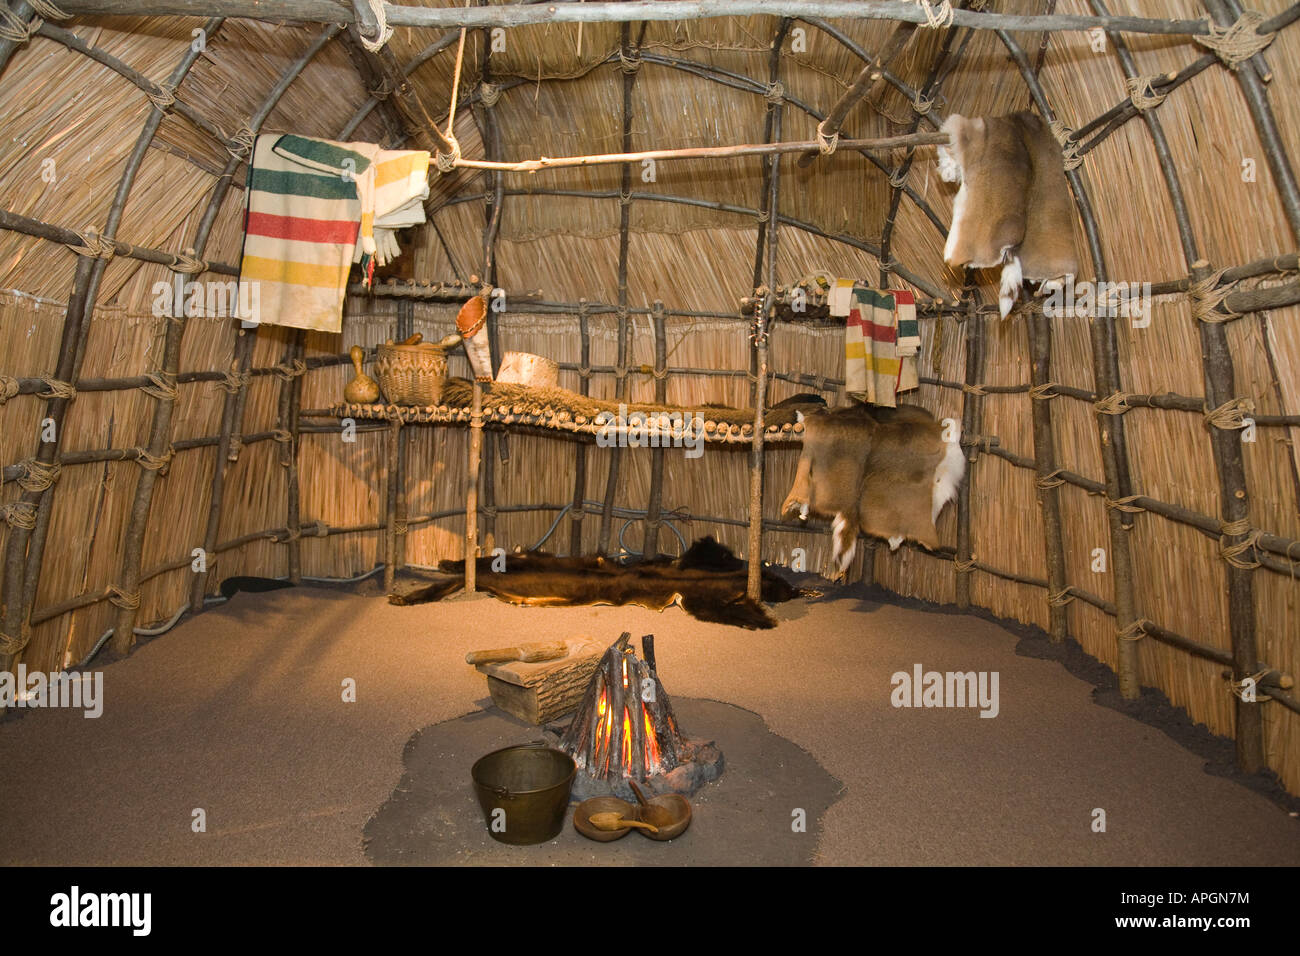 ILLINOIS Rockford Interior of wigwam Native American house plains Indians blankets pots and animal skins - Stock Image